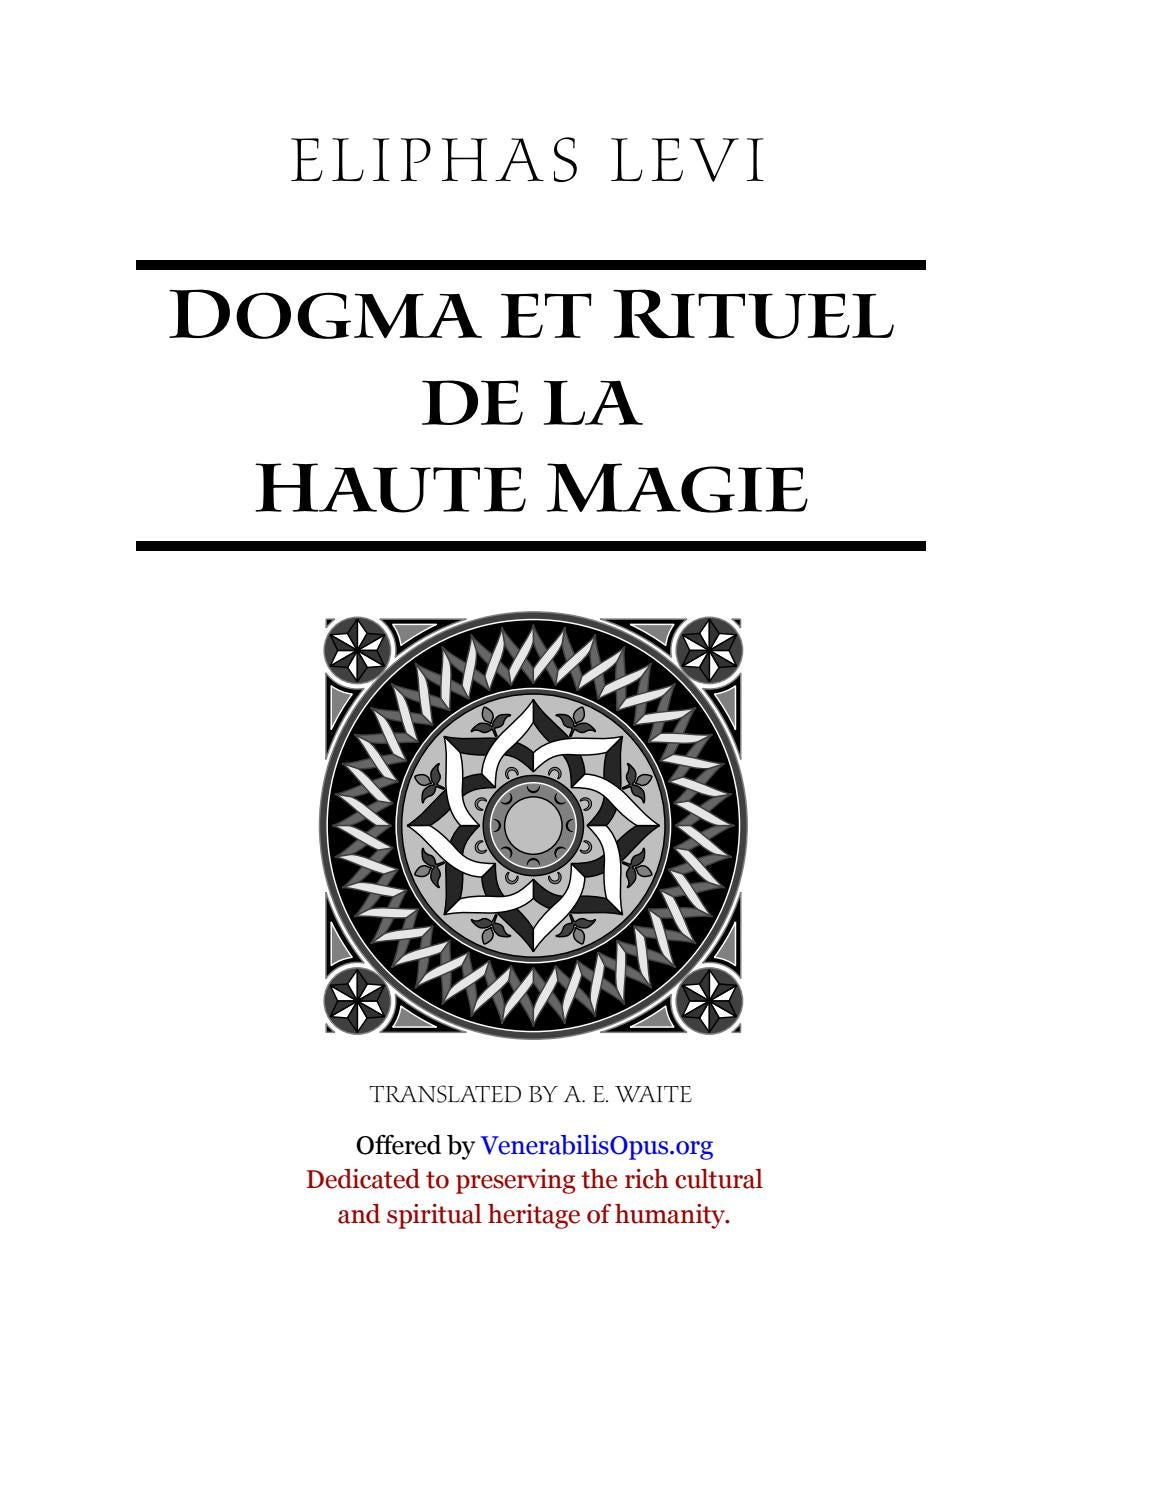 Peachy 130 Eliphas Levi Dogma And Ritual Of High Magic Part Ii By Gamerscity Chair Design For Home Gamerscityorg